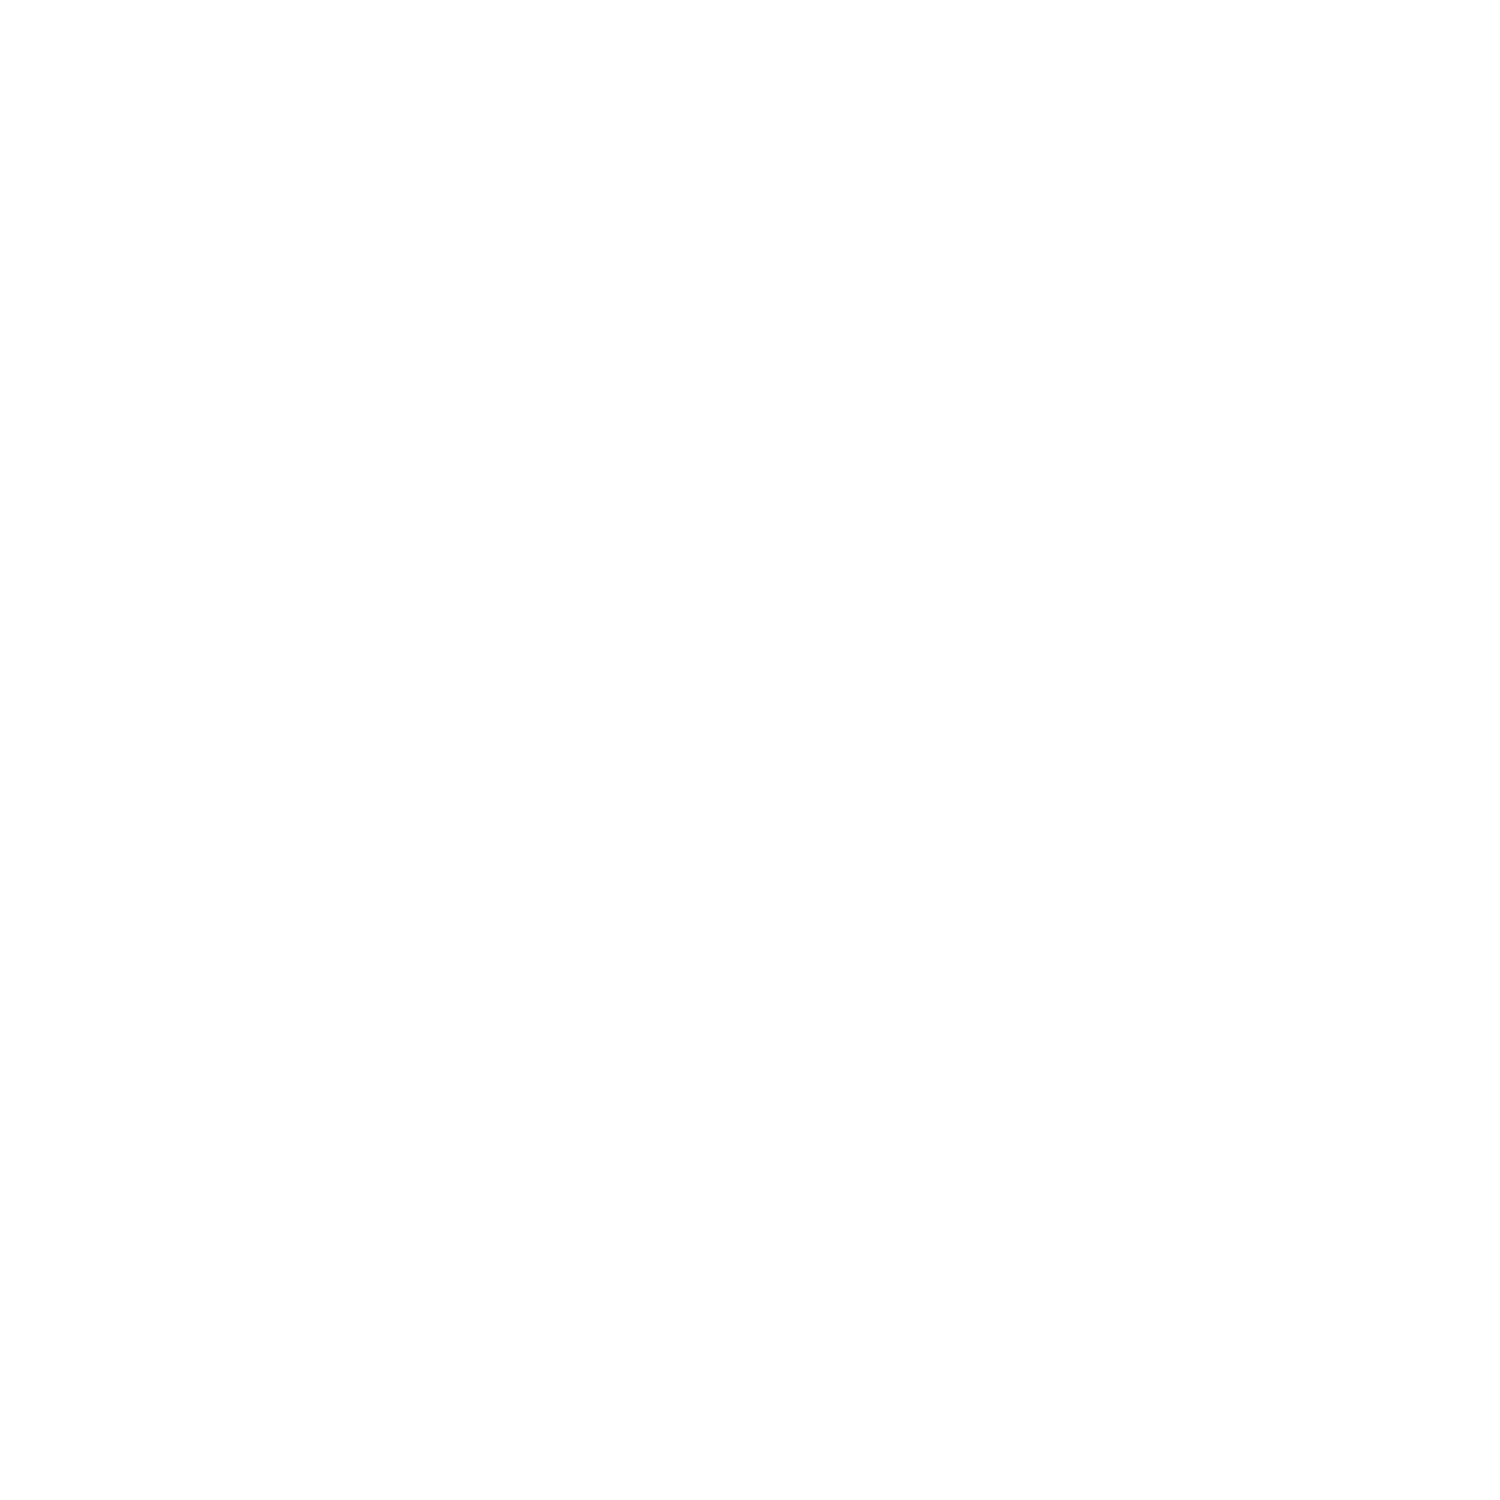 The Truffles Group